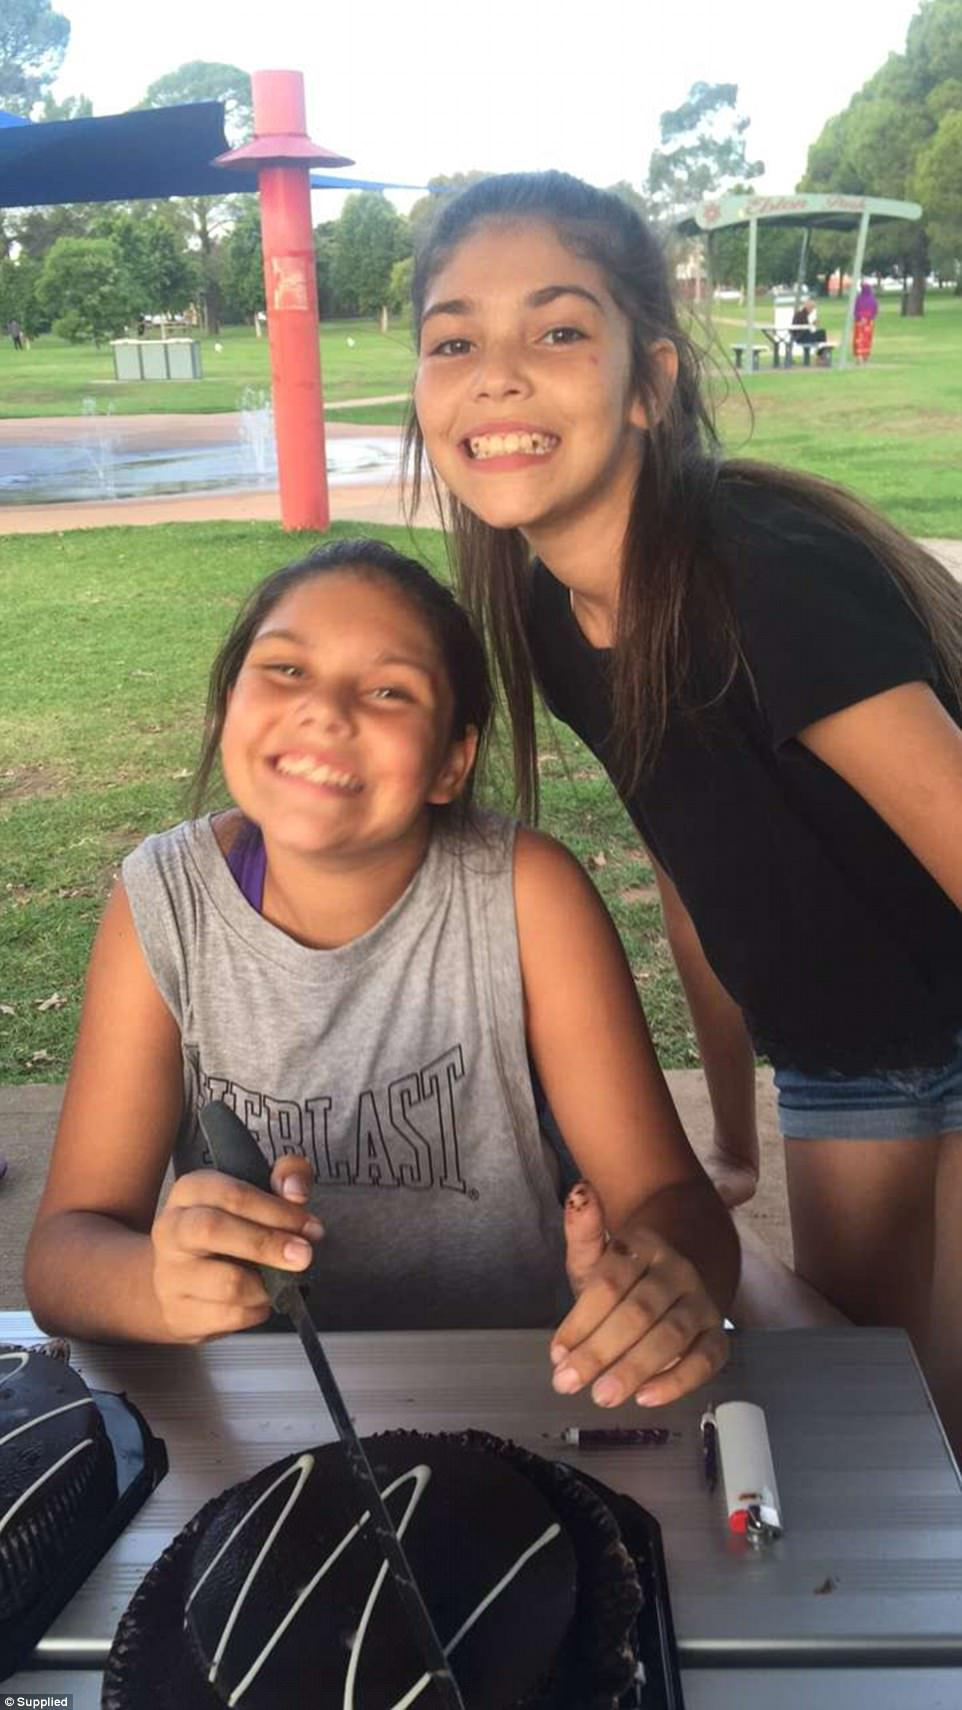 The teenager pictured weeks ago with her sister is excited to be able to 'be happy'